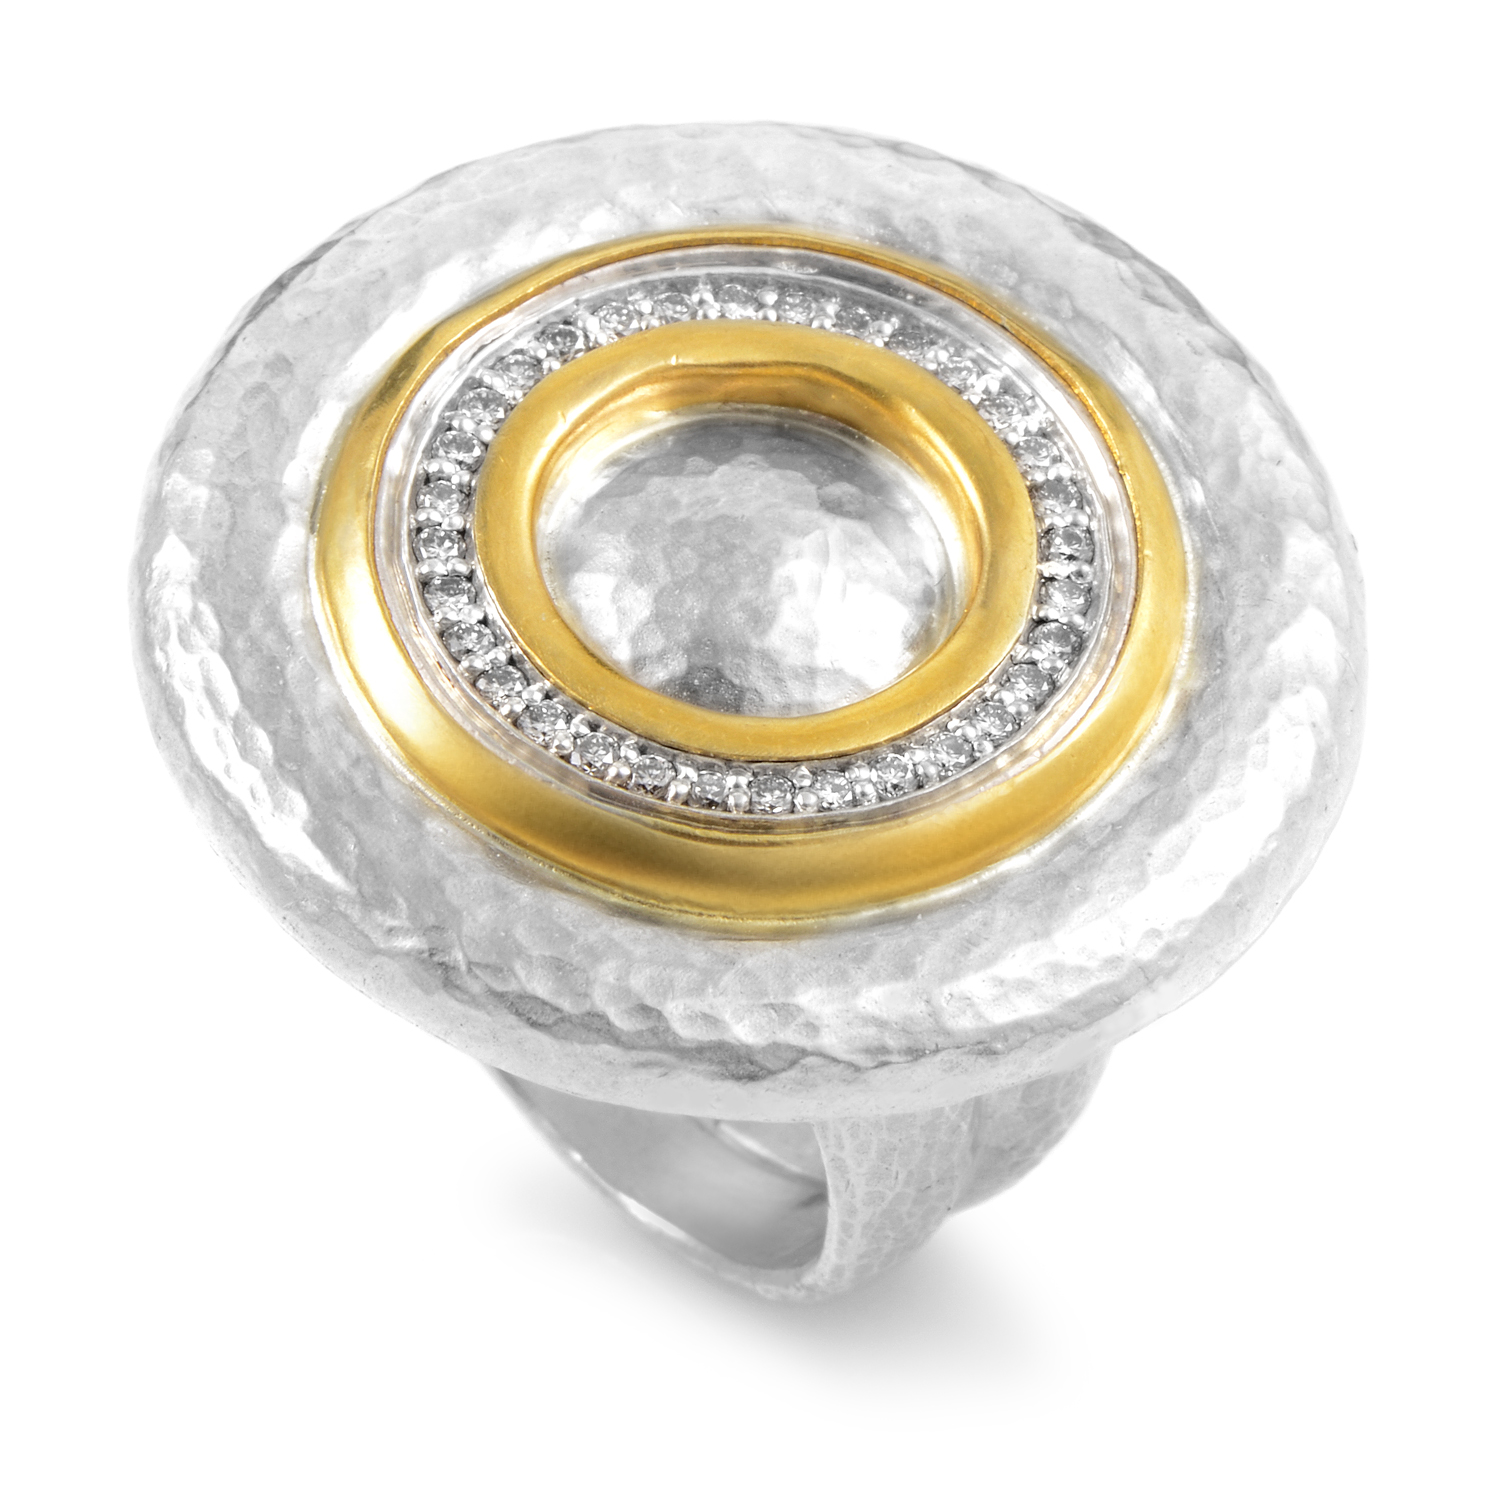 Moon Beam Women's Sterling Silver & 24K Yellow Gold Diamond Ring